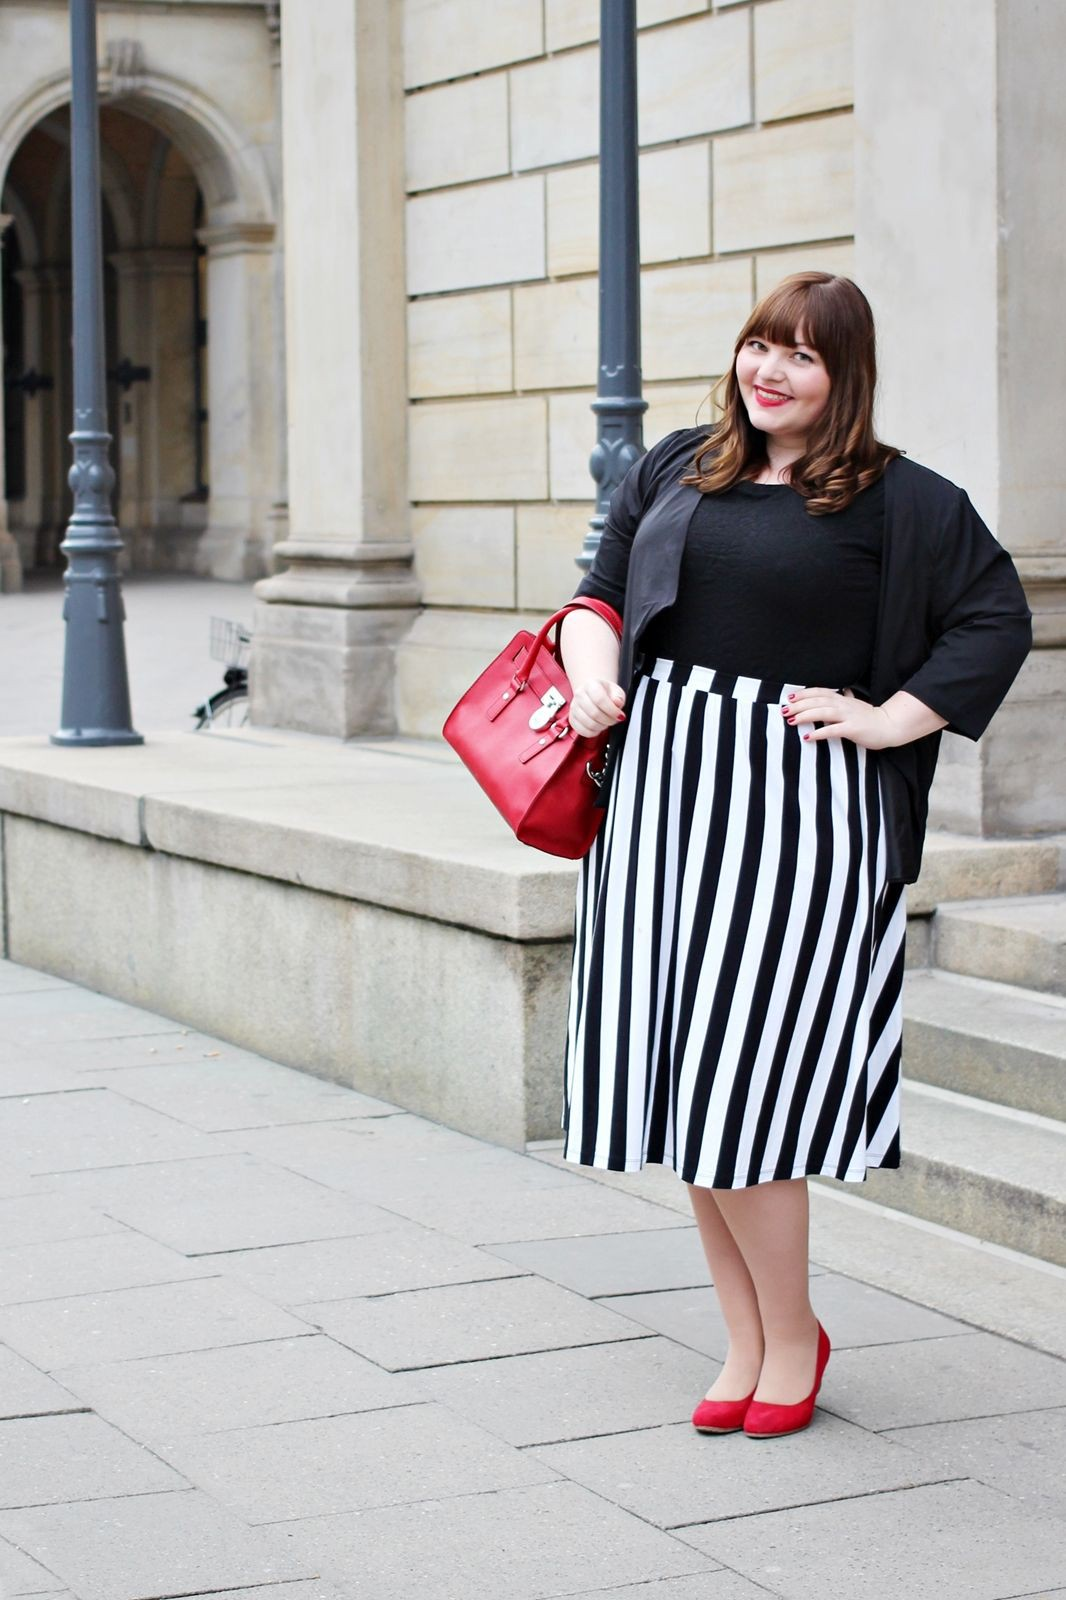 Plus Size Workwear Outfits, Pencil skirt, Thigh-high boots